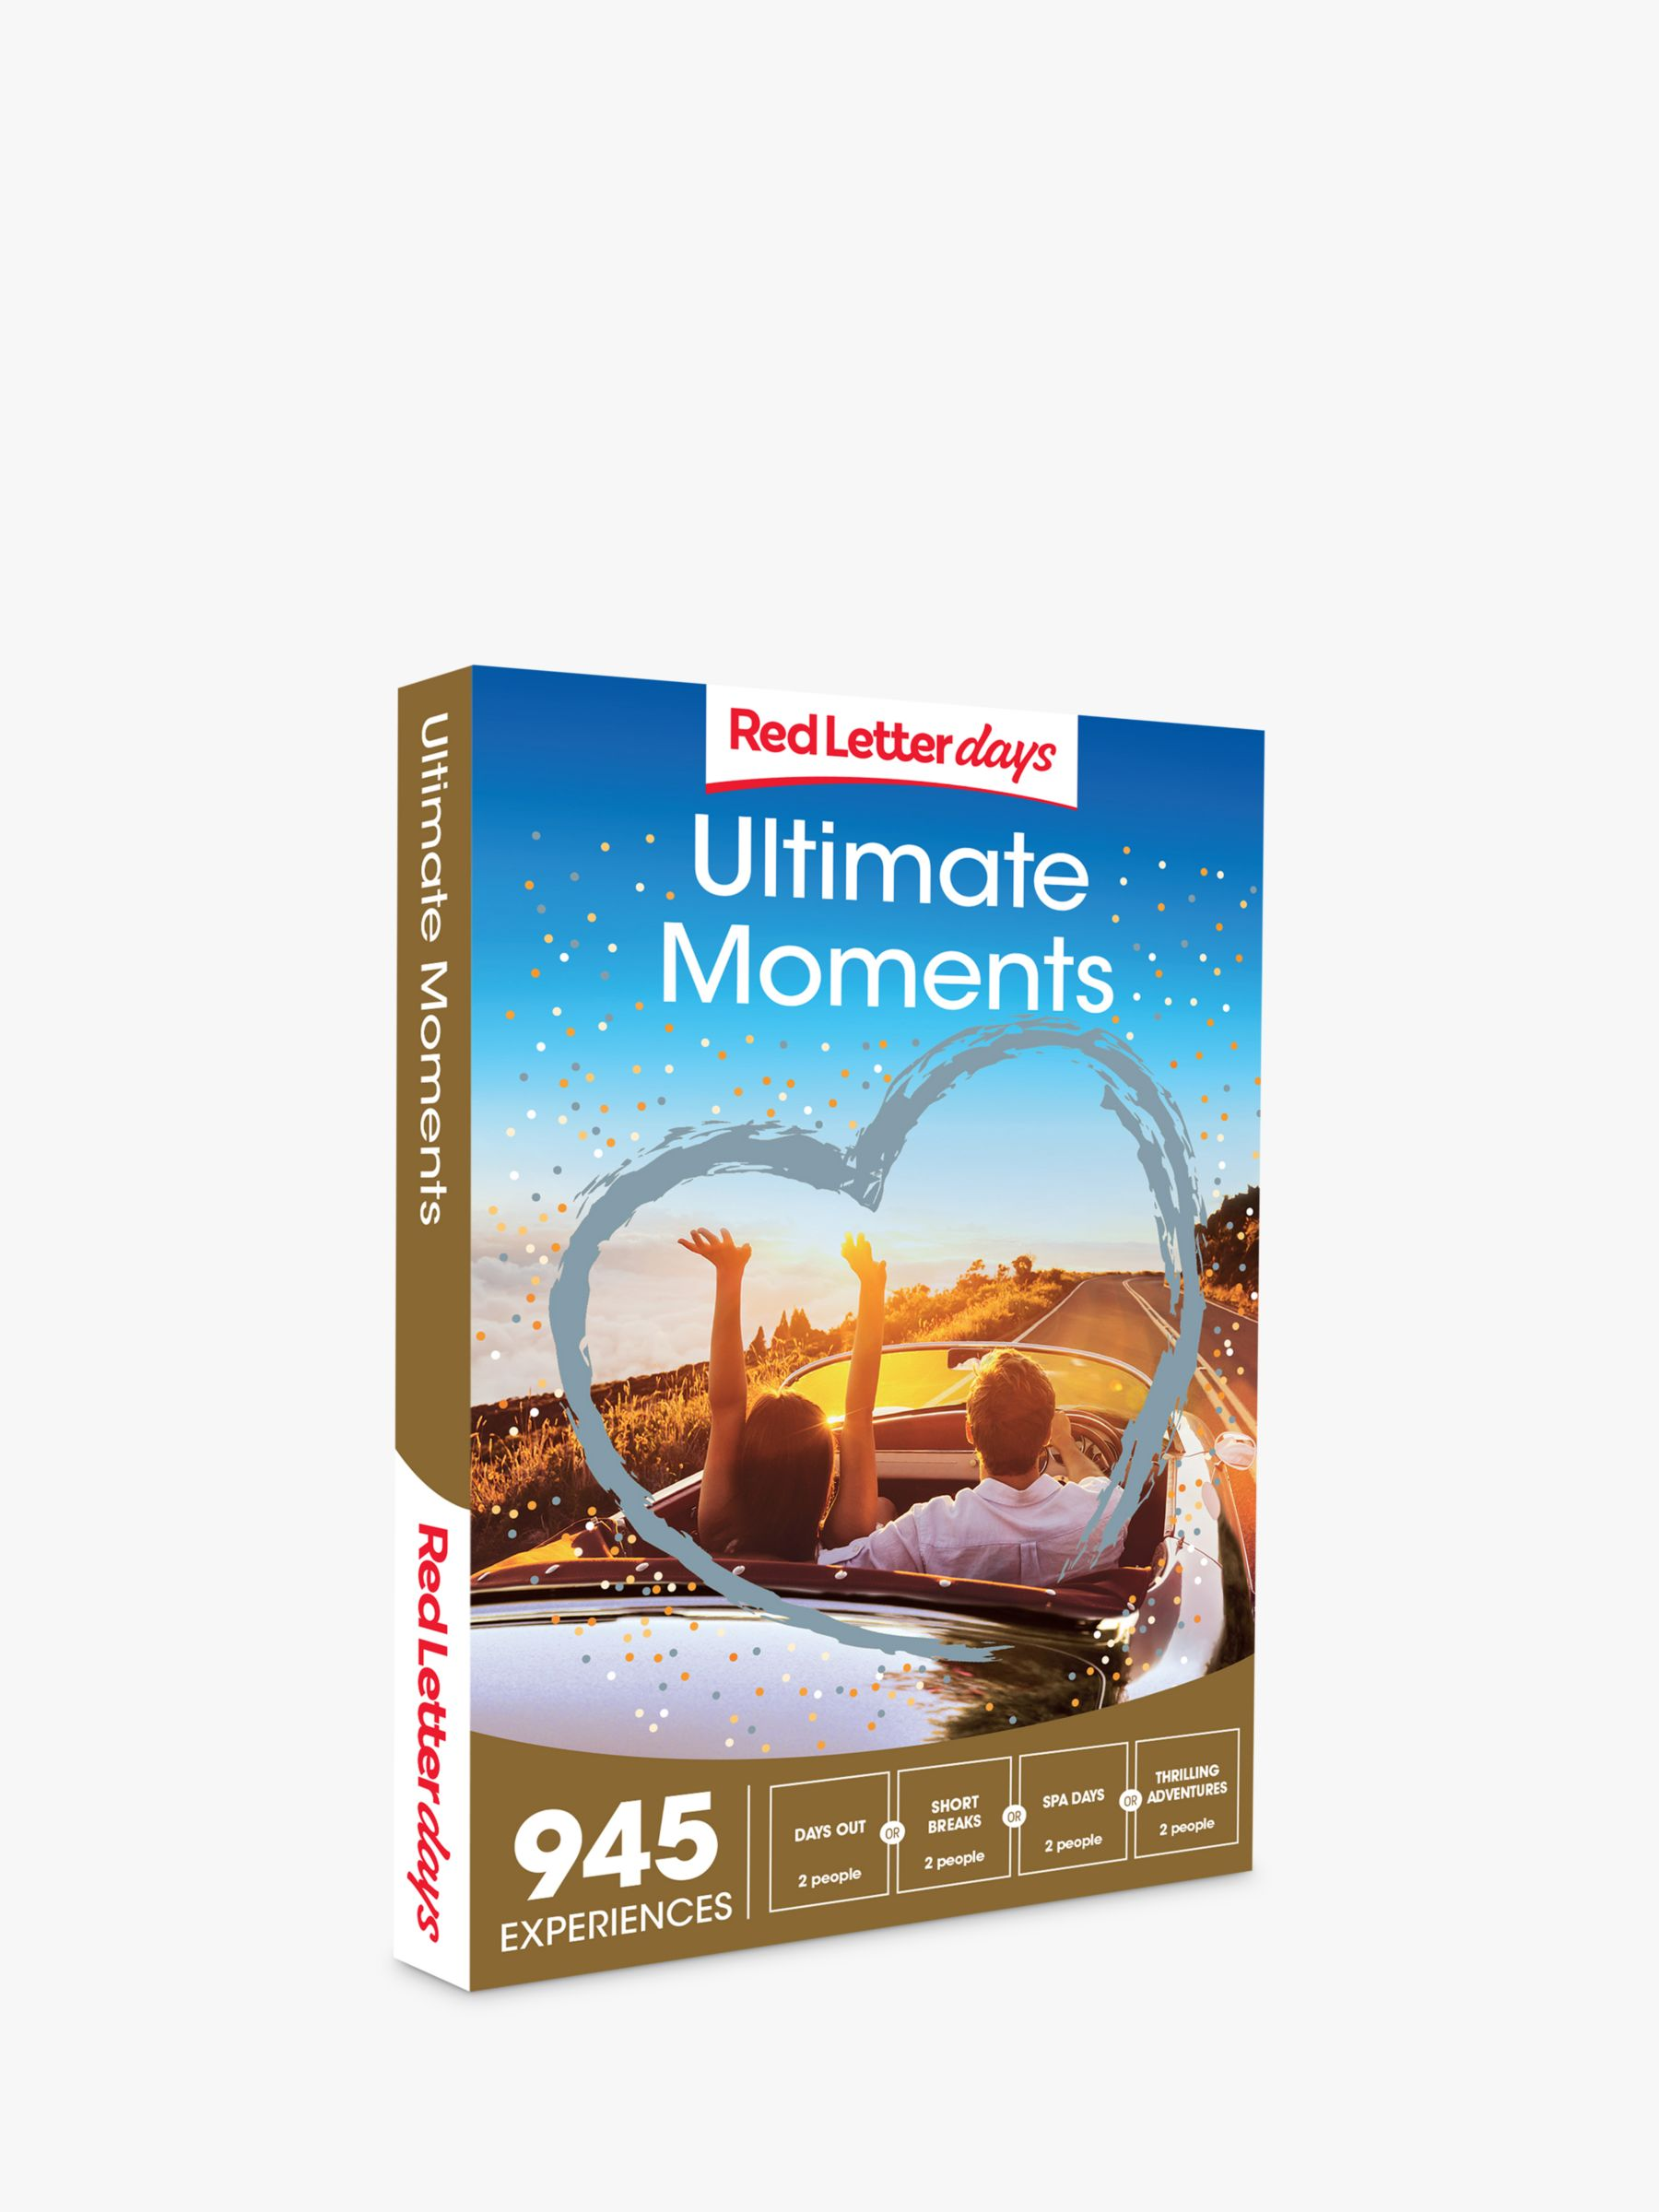 Red Letter Days Red Letter Days Ultimate Moments Gift Experience